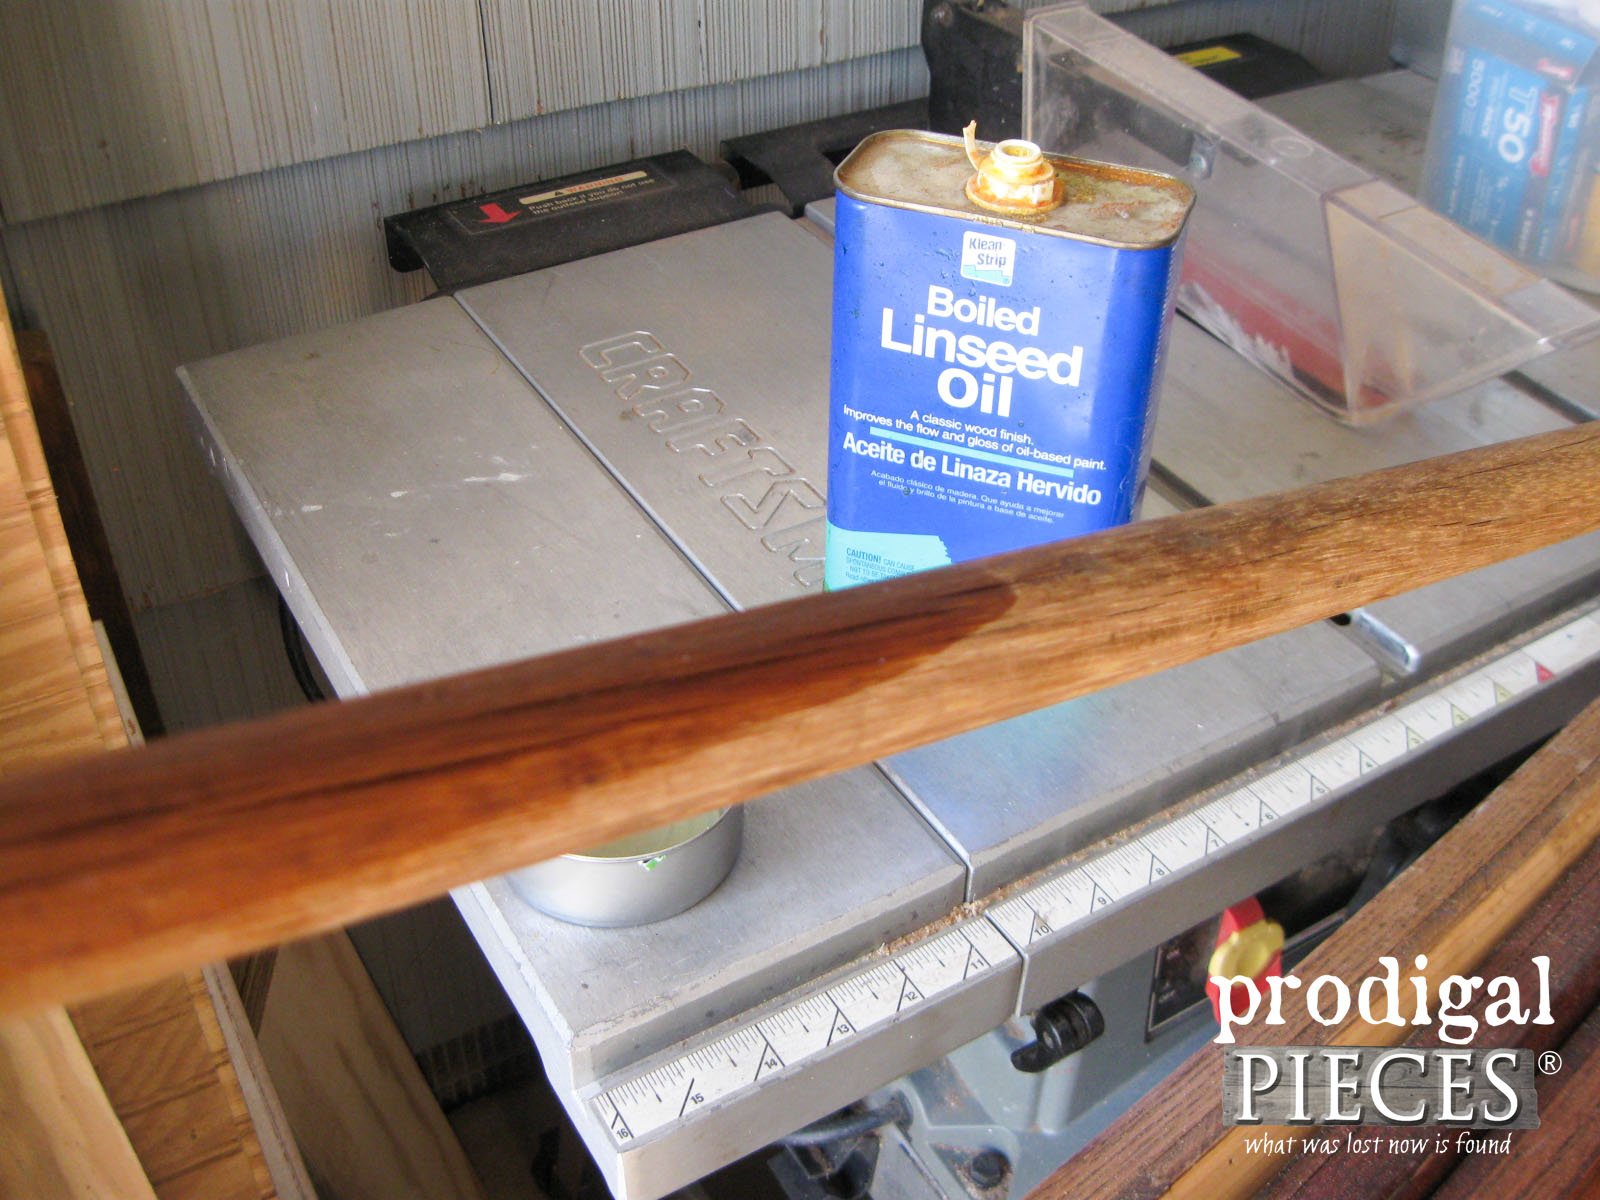 Boiled Linseed Oil to Refresh Old Wood | Prodigal Pieces | www.prodigalpieces.com